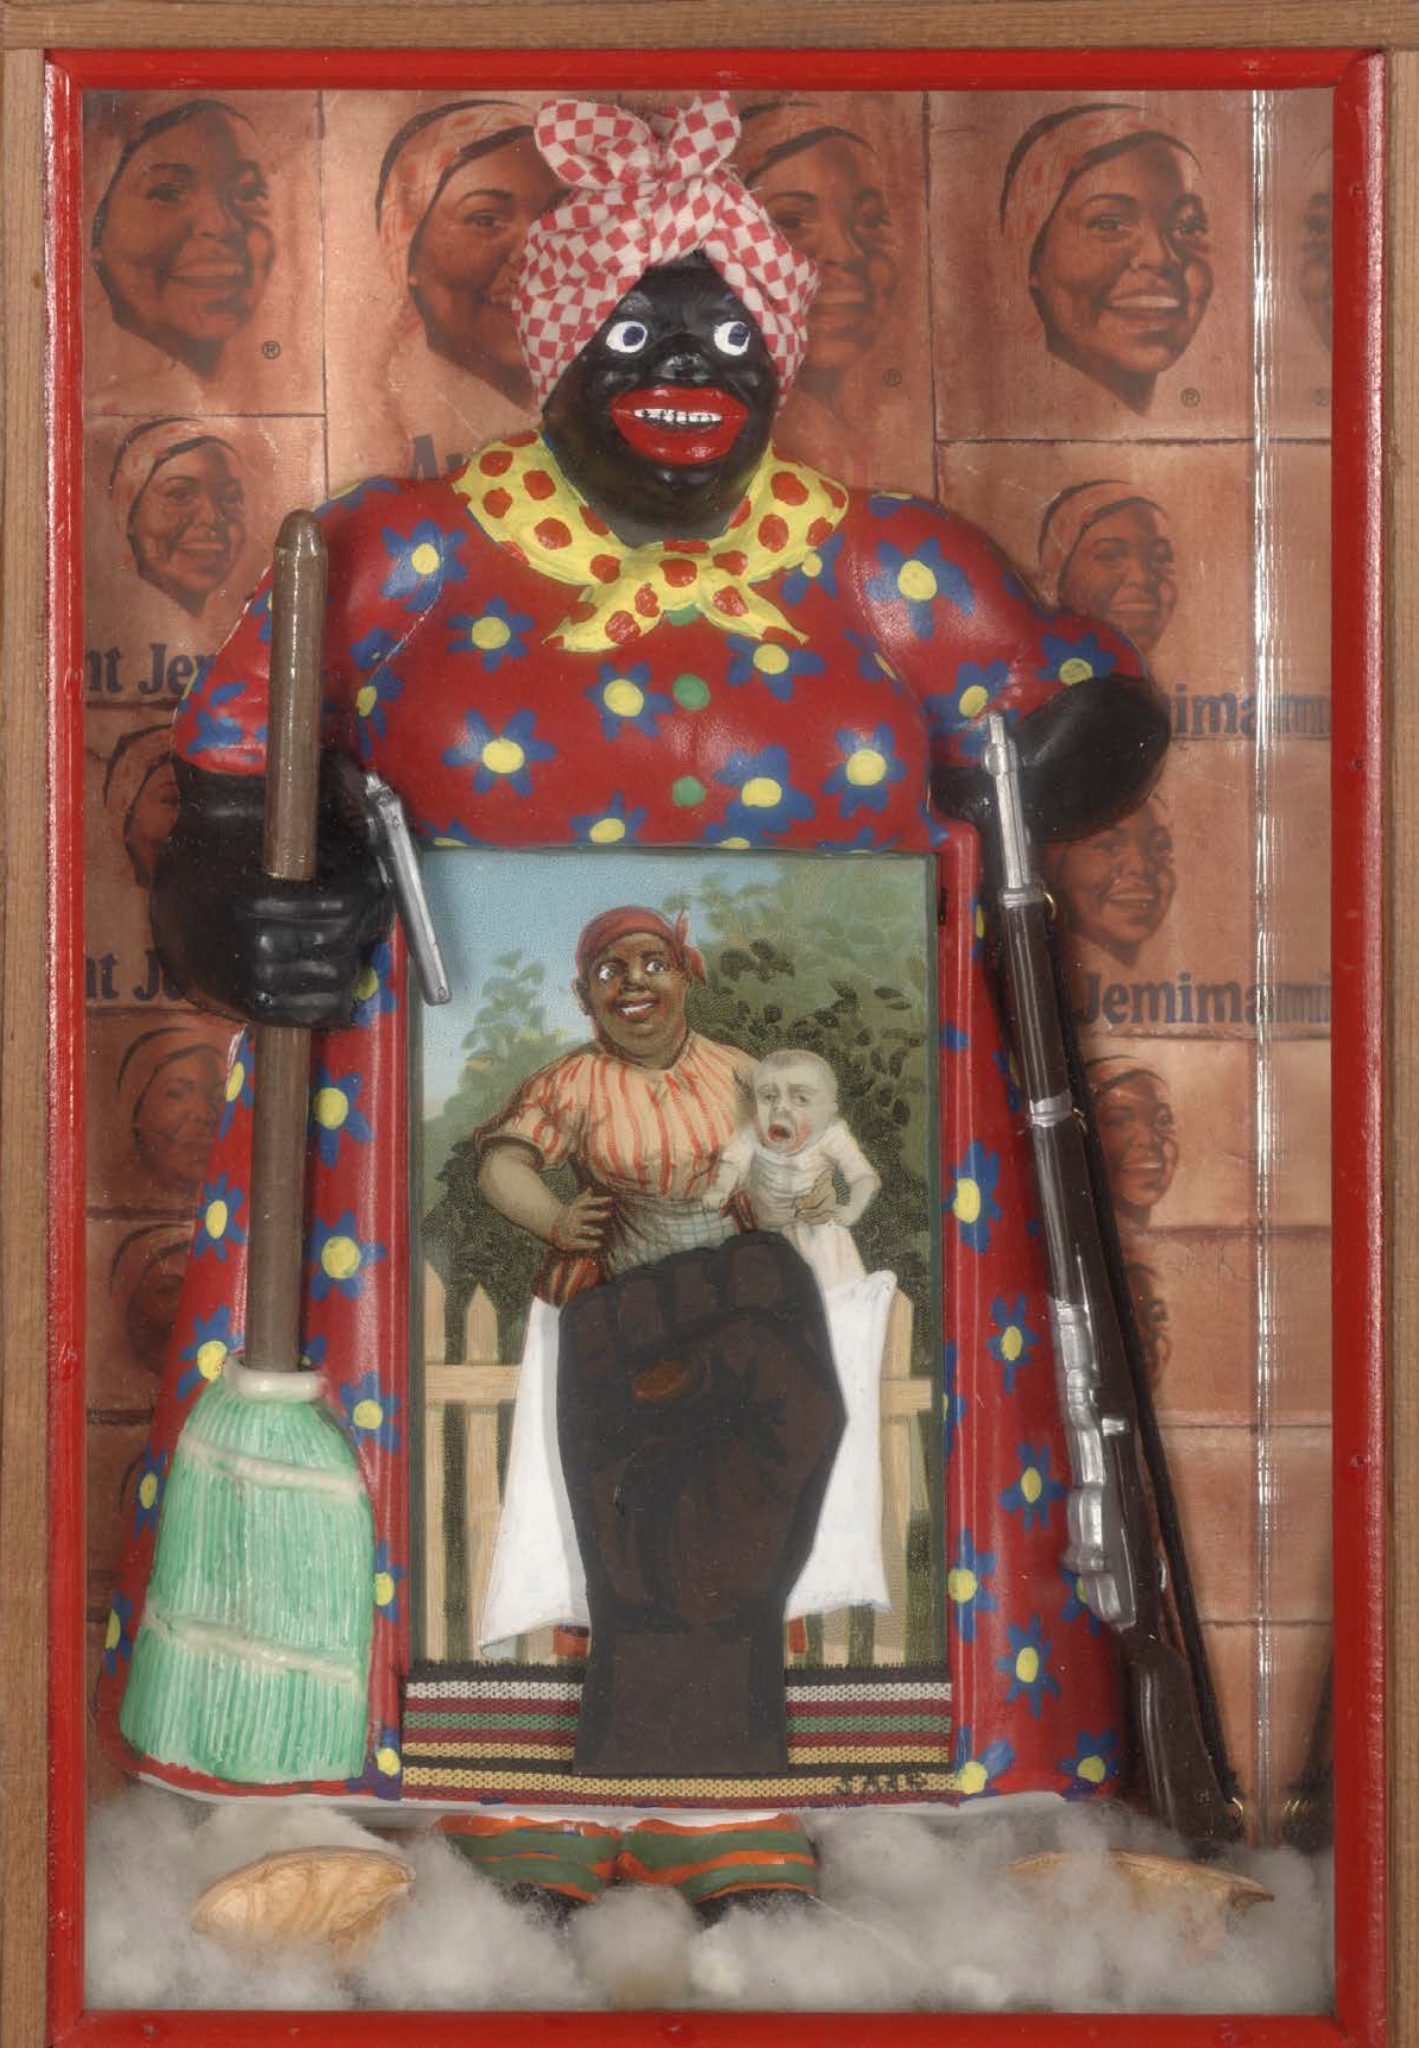 aunt jemima kitchen curtains discount lighting betye saar we constantly have to be reminded that racism